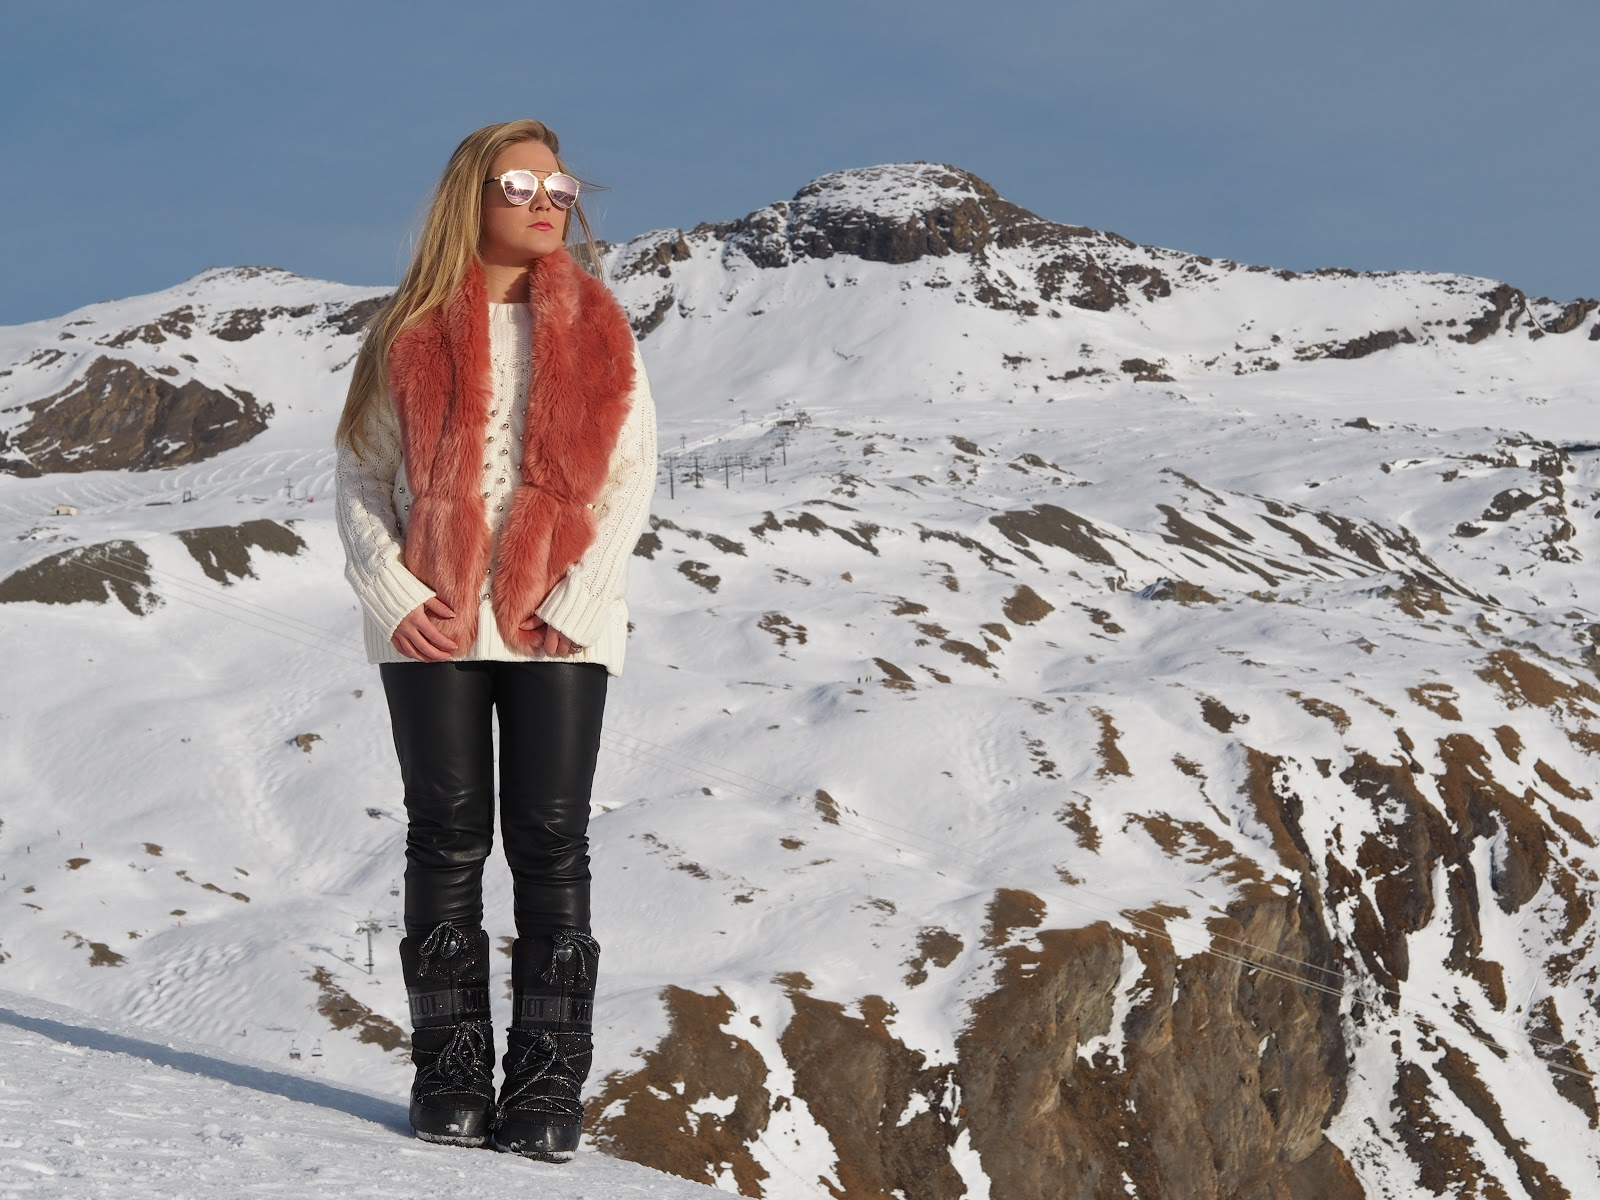 Blonde girl sitting in snowy mountains wearing blue and pink fur, sunglasses and moon boots, Val d'Isere, France